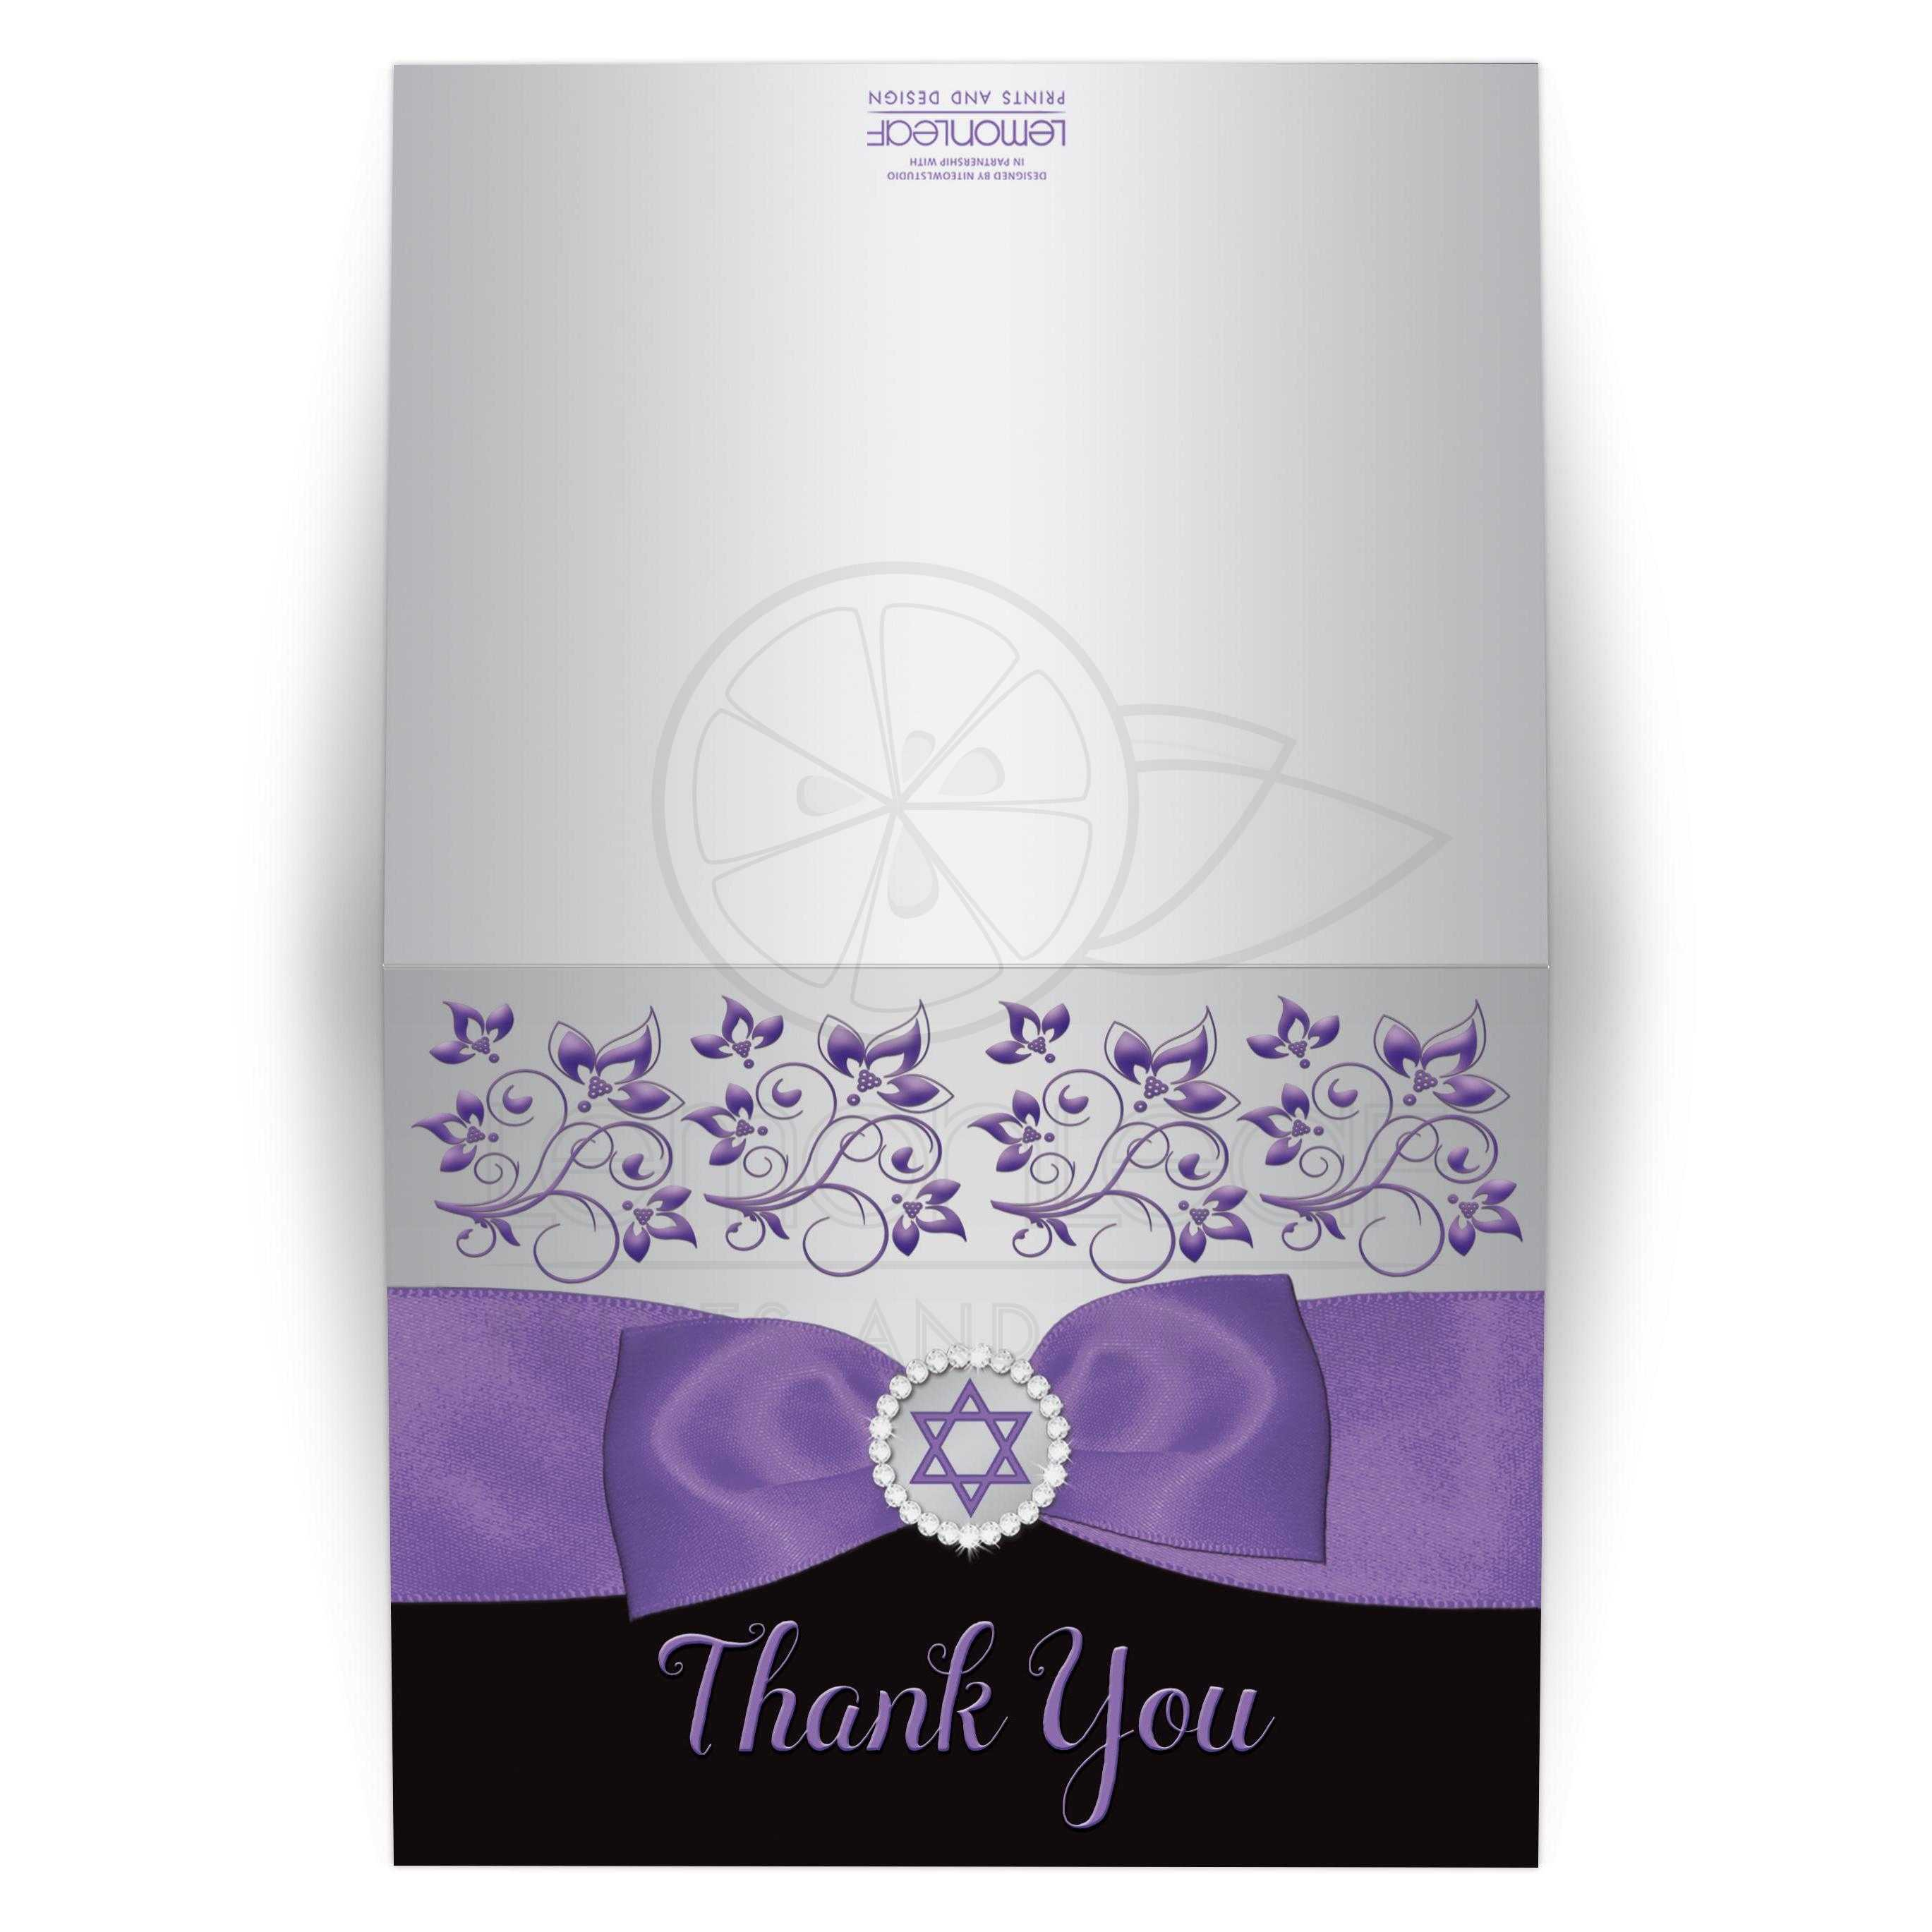 Black Silver Gray And Purple Bat Mitzvah Thank You Card With Ribbon